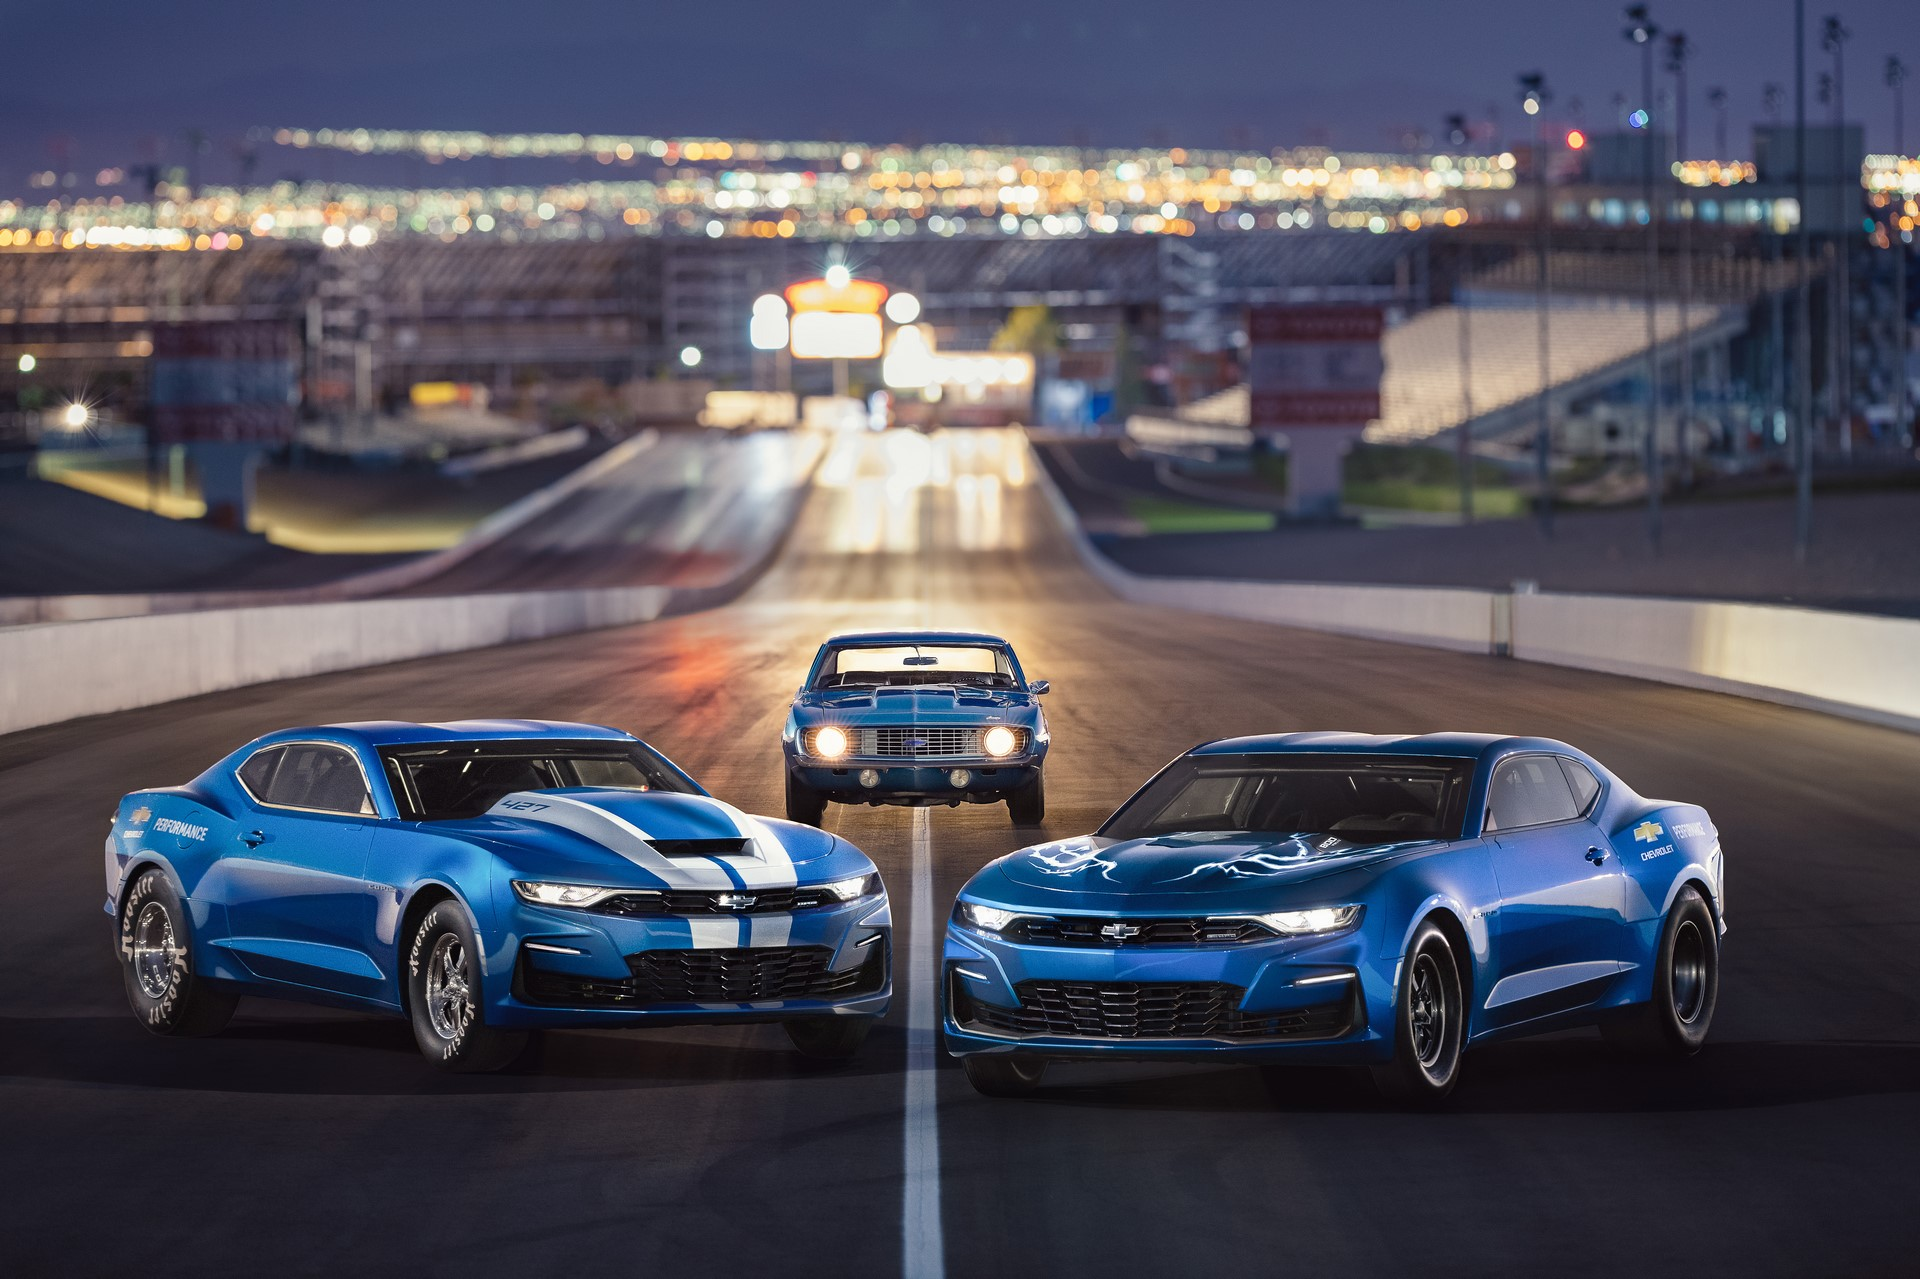 Chevrolet celebrates the 50th anniversary of the COPO Camaro at the 2018 SEMA Show, with the 2019 COPO Camaro race car, a vintage 1969 COPO Camaro and the electrified eCOPO Concept.